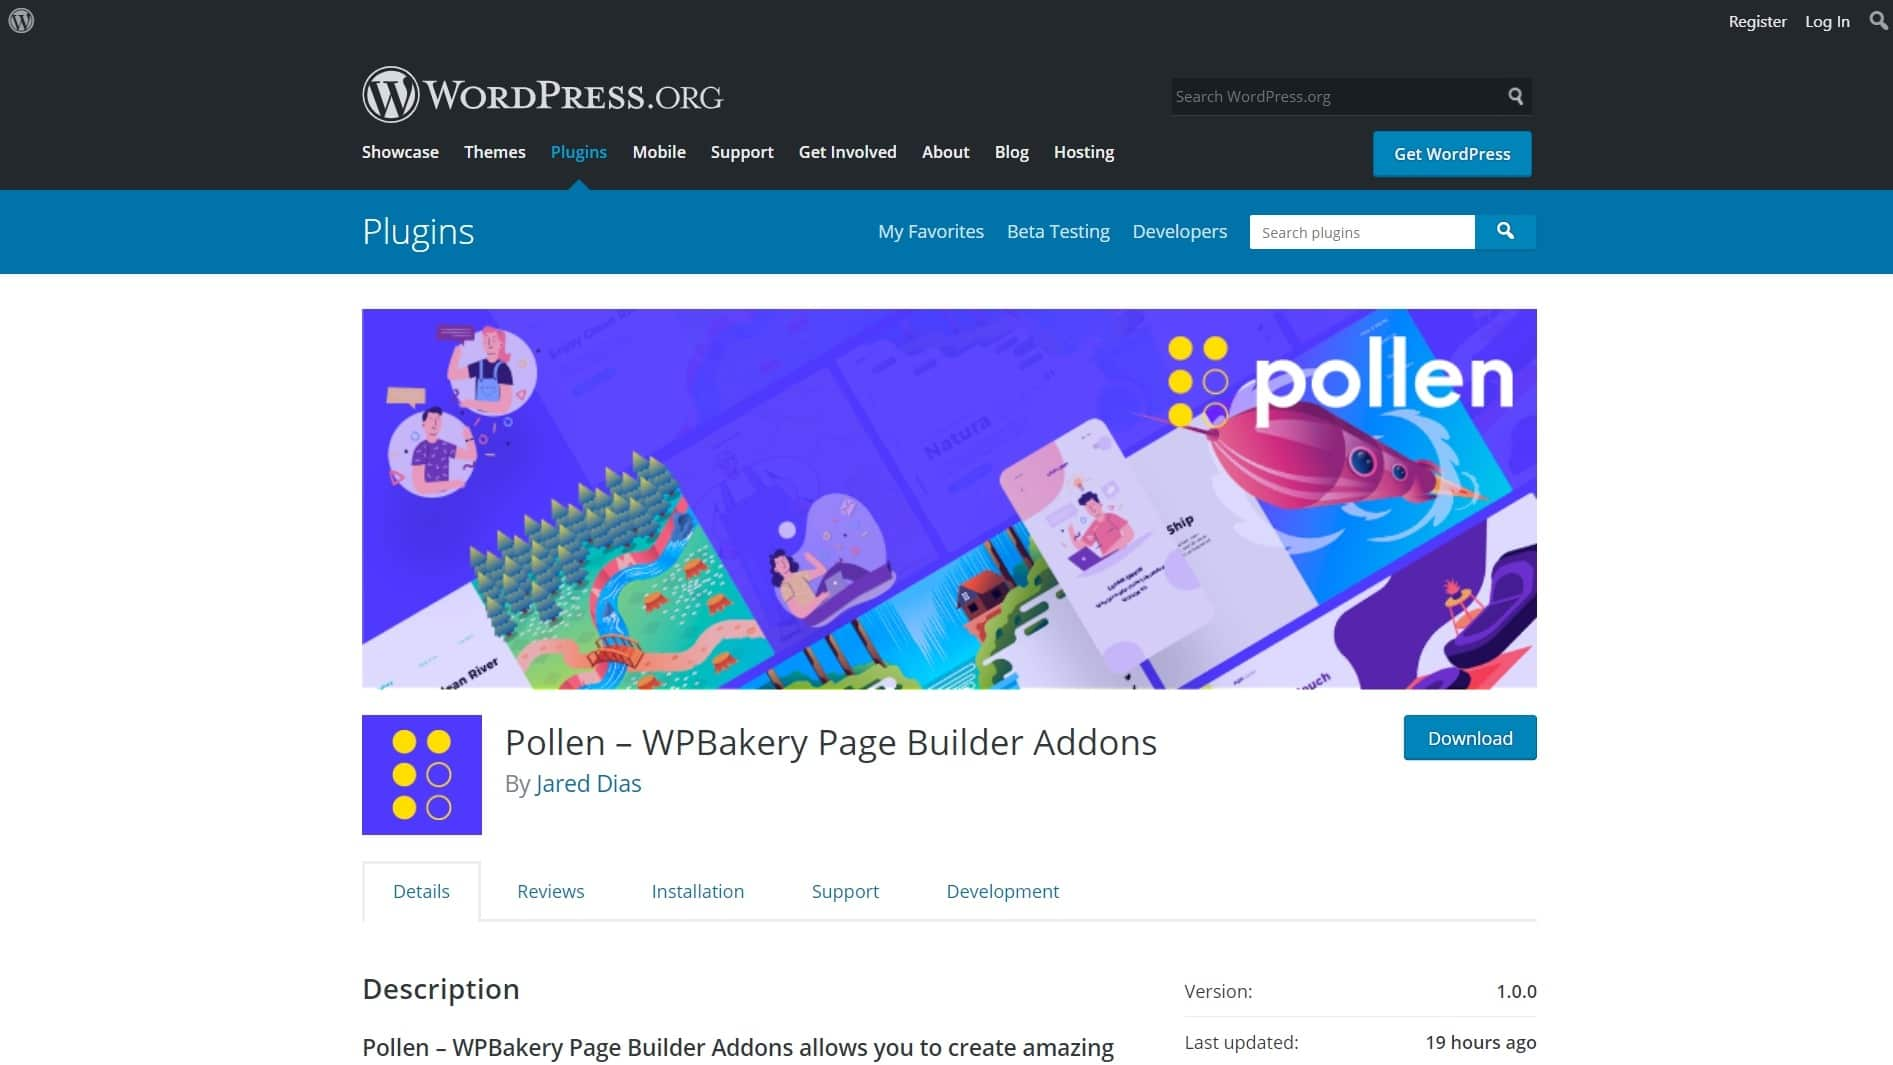 How To Install Pollen WordPress Plugin - WPBakery Page Builder Addons